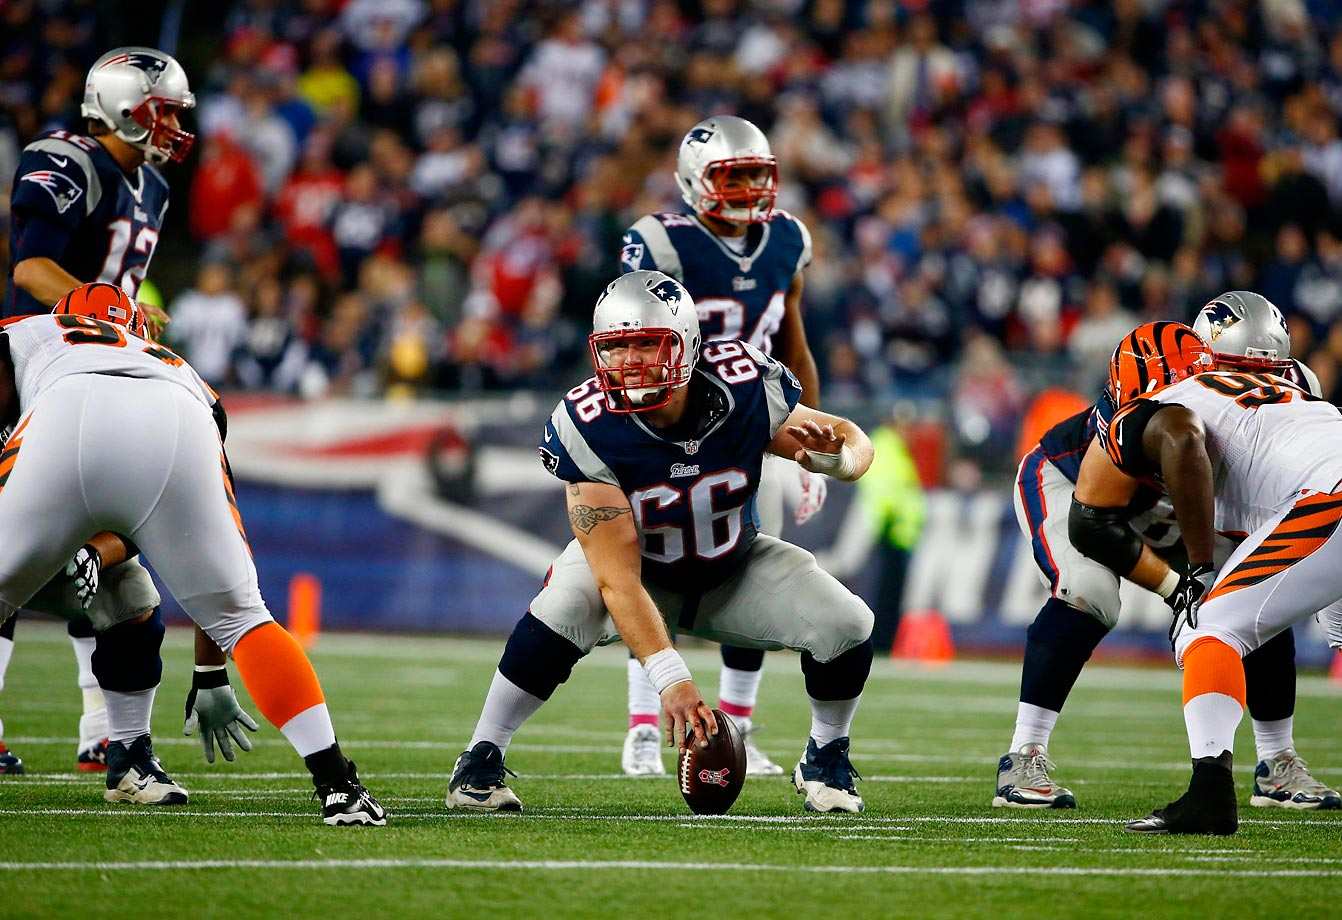 Bryan Stork (pictured) has the center position sewn up. It's up to Ryan Wendell to make the right guard spot his. Left tackle Nate Solder and right tackle Sebastian Vollmer have overcome early technical issues to become a formidable outside protection duo. Meanwhile, coach Bill Belichick expressed a clear desire to get younger and stronger along his line, selecting guards Tre Jackson (Florida State) and Shaq Mason (Georgia Tech) in the fourth round this spring.